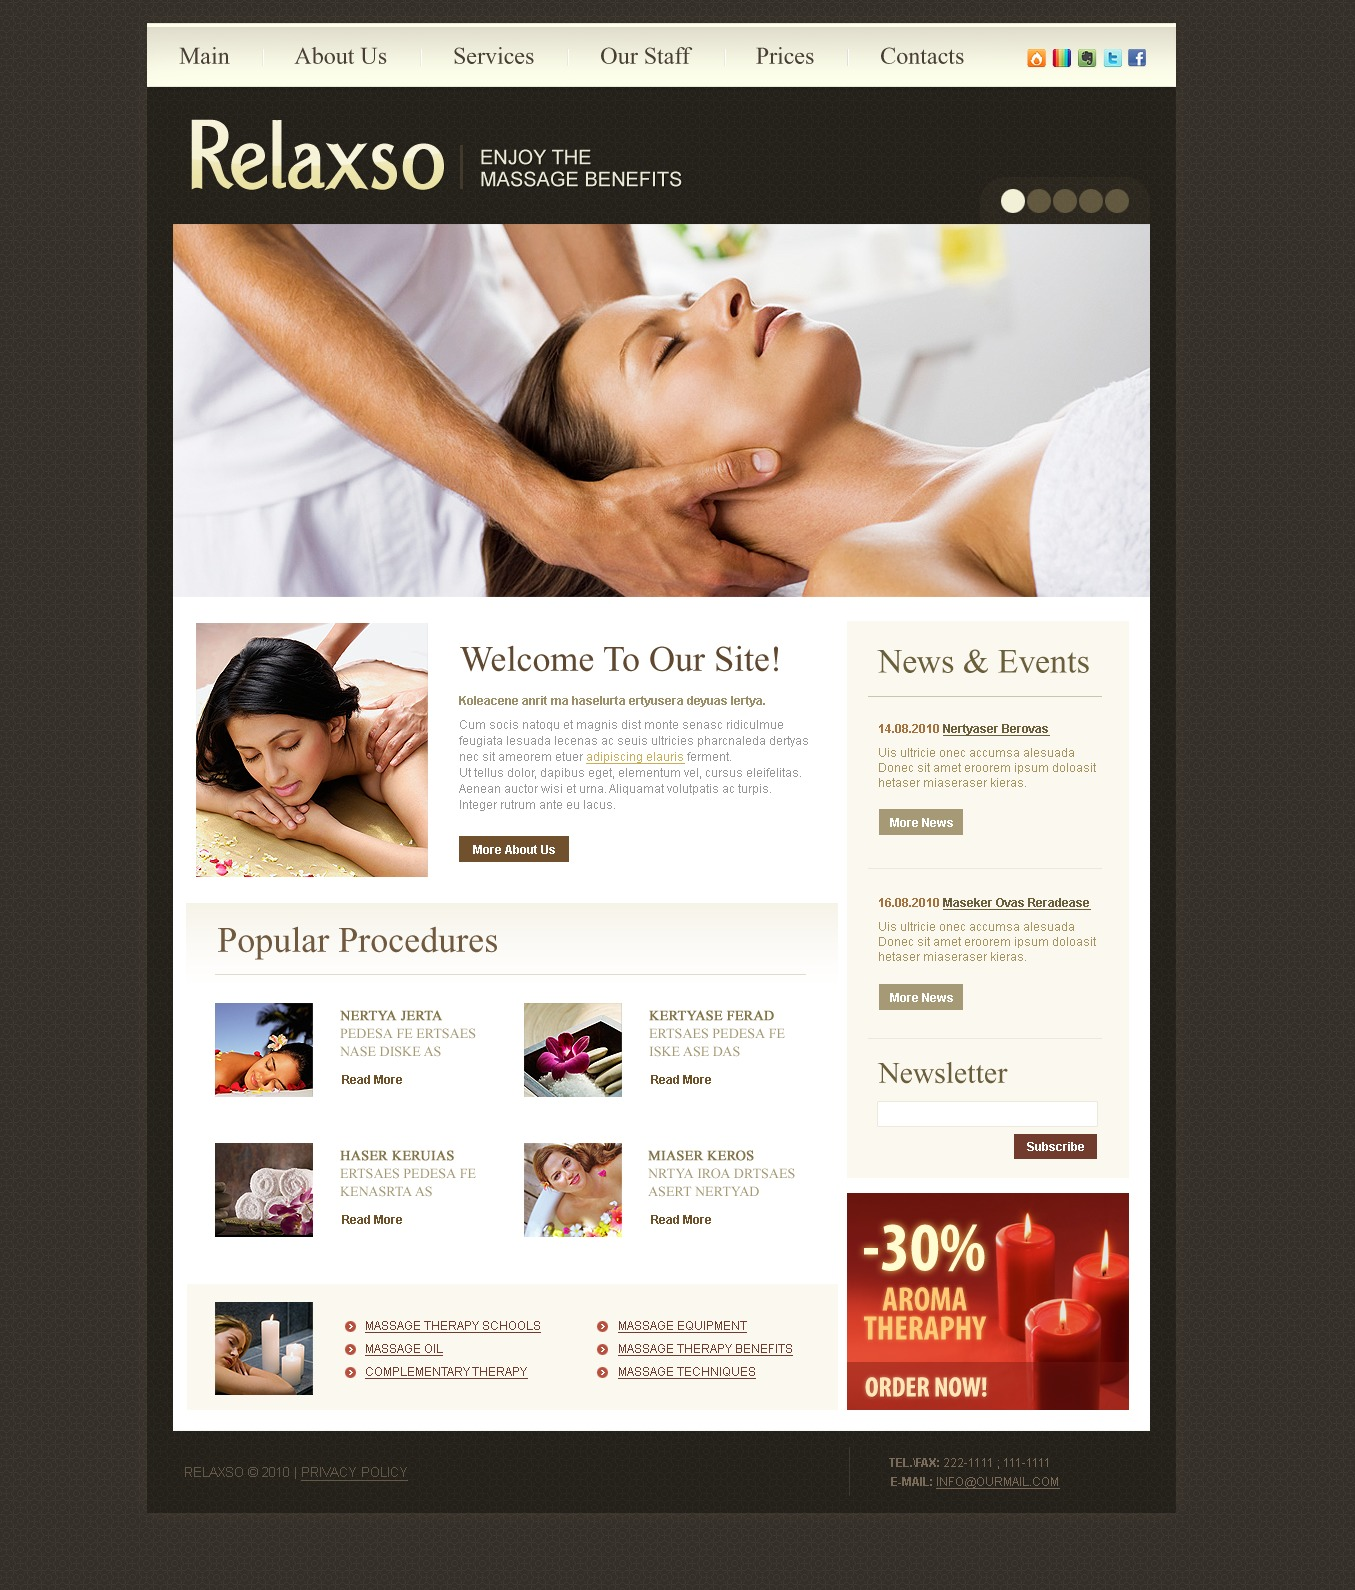 The Relaxso SPA Studio Salon PSD Design 54152, one of the best PSD templates of its kind (beauty, most popular, wide, jquery), also known as relaxso SPA studio salon PSD template, beauty PSD template, cosmetic PSD template, weight loss PSD template, massage PSD template, facial PSD template, body PSD template, style PSD template, product PSD template, staff PSD template, professional PSD template, decorative PSD template, foundation PSD template, cream care PSD template, lipstick PSD template, mascara PSD template, powder PSD template, rouge PSD template, skin PSD template, perfume PSD template, makeup PSD template, education PSD template, consultation PSD template, research PSD template, technology PSD template, special offer PSD template, fashion and related with relaxso SPA studio salon, beauty, cosmetic, weight loss, massage, facial, body, style, product, staff, professional, decorative, foundation, cream care, lipstick, mascara, powder, rouge, skin, perfume, makeup, education, consultation, research, technology, special offer, fashion, etc.